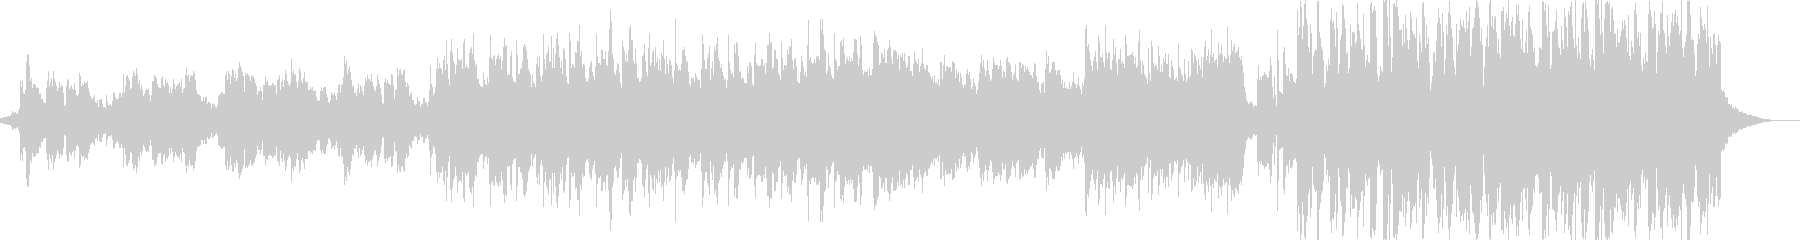 Fashionable and sad Western-style pop dance song's unreproduced waveform